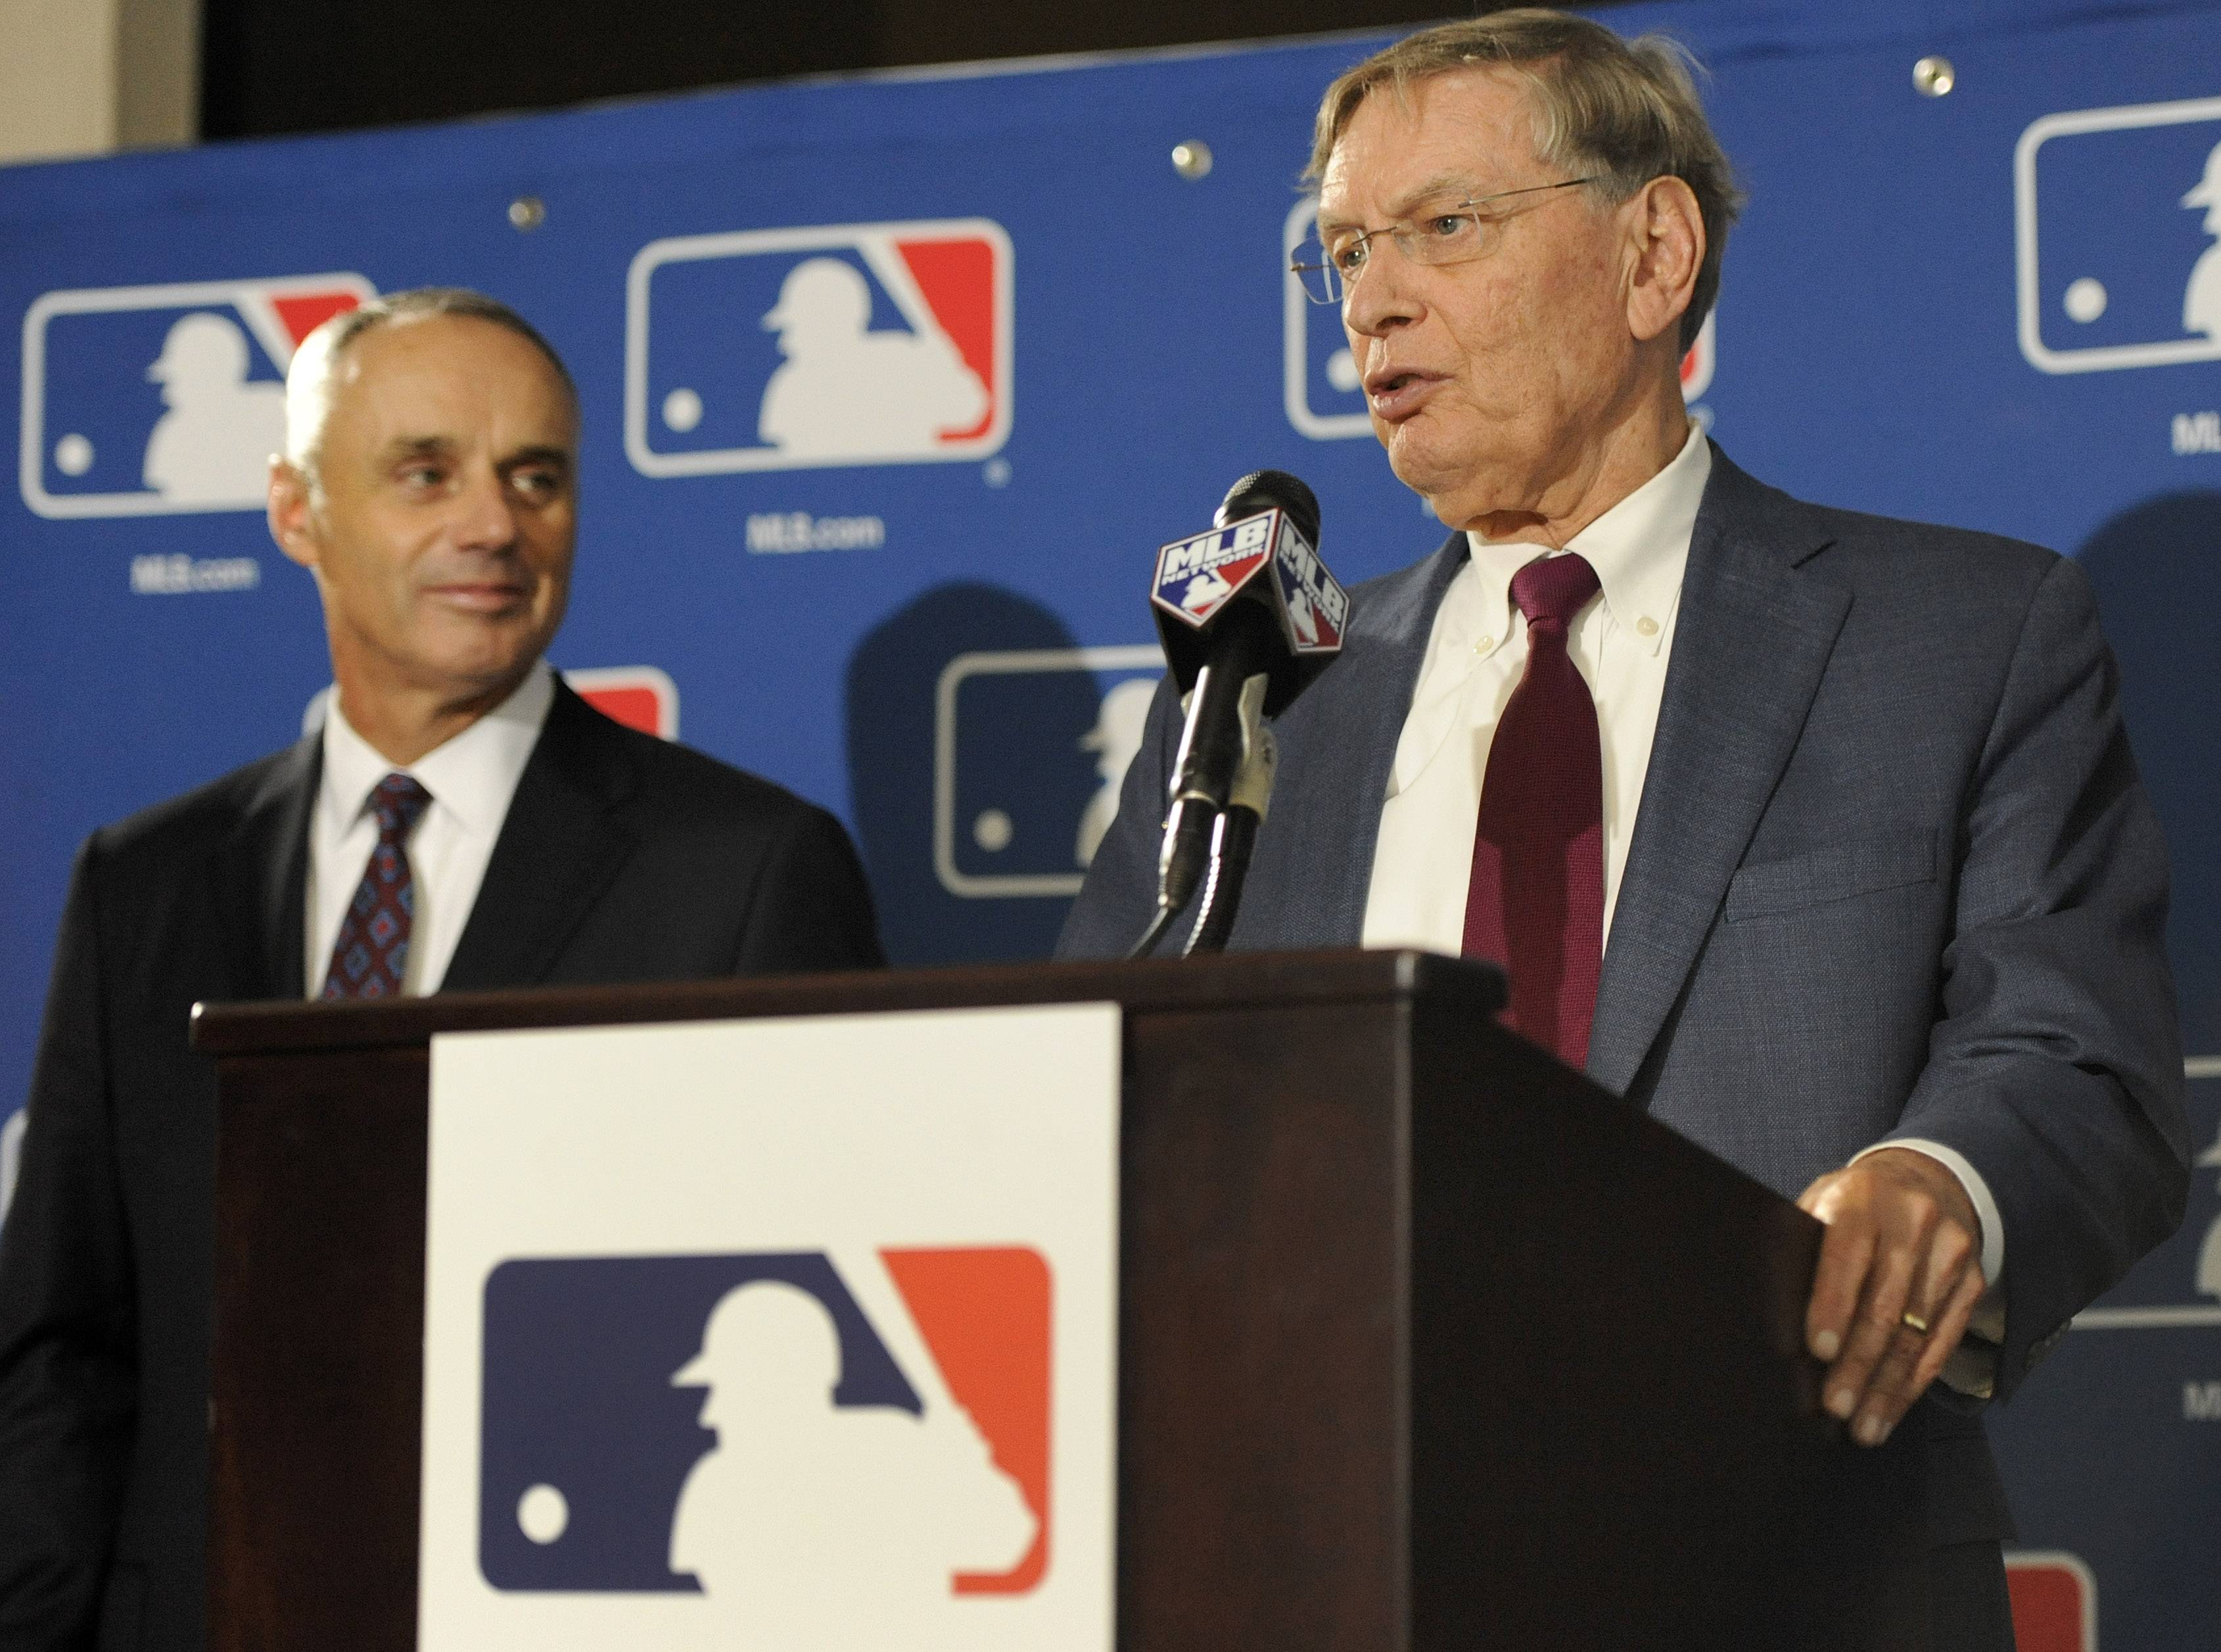 Retiring Major League Baseball Commissioner Bud Selig, right, introduces his successor, Rob Manfred, on Thursday.